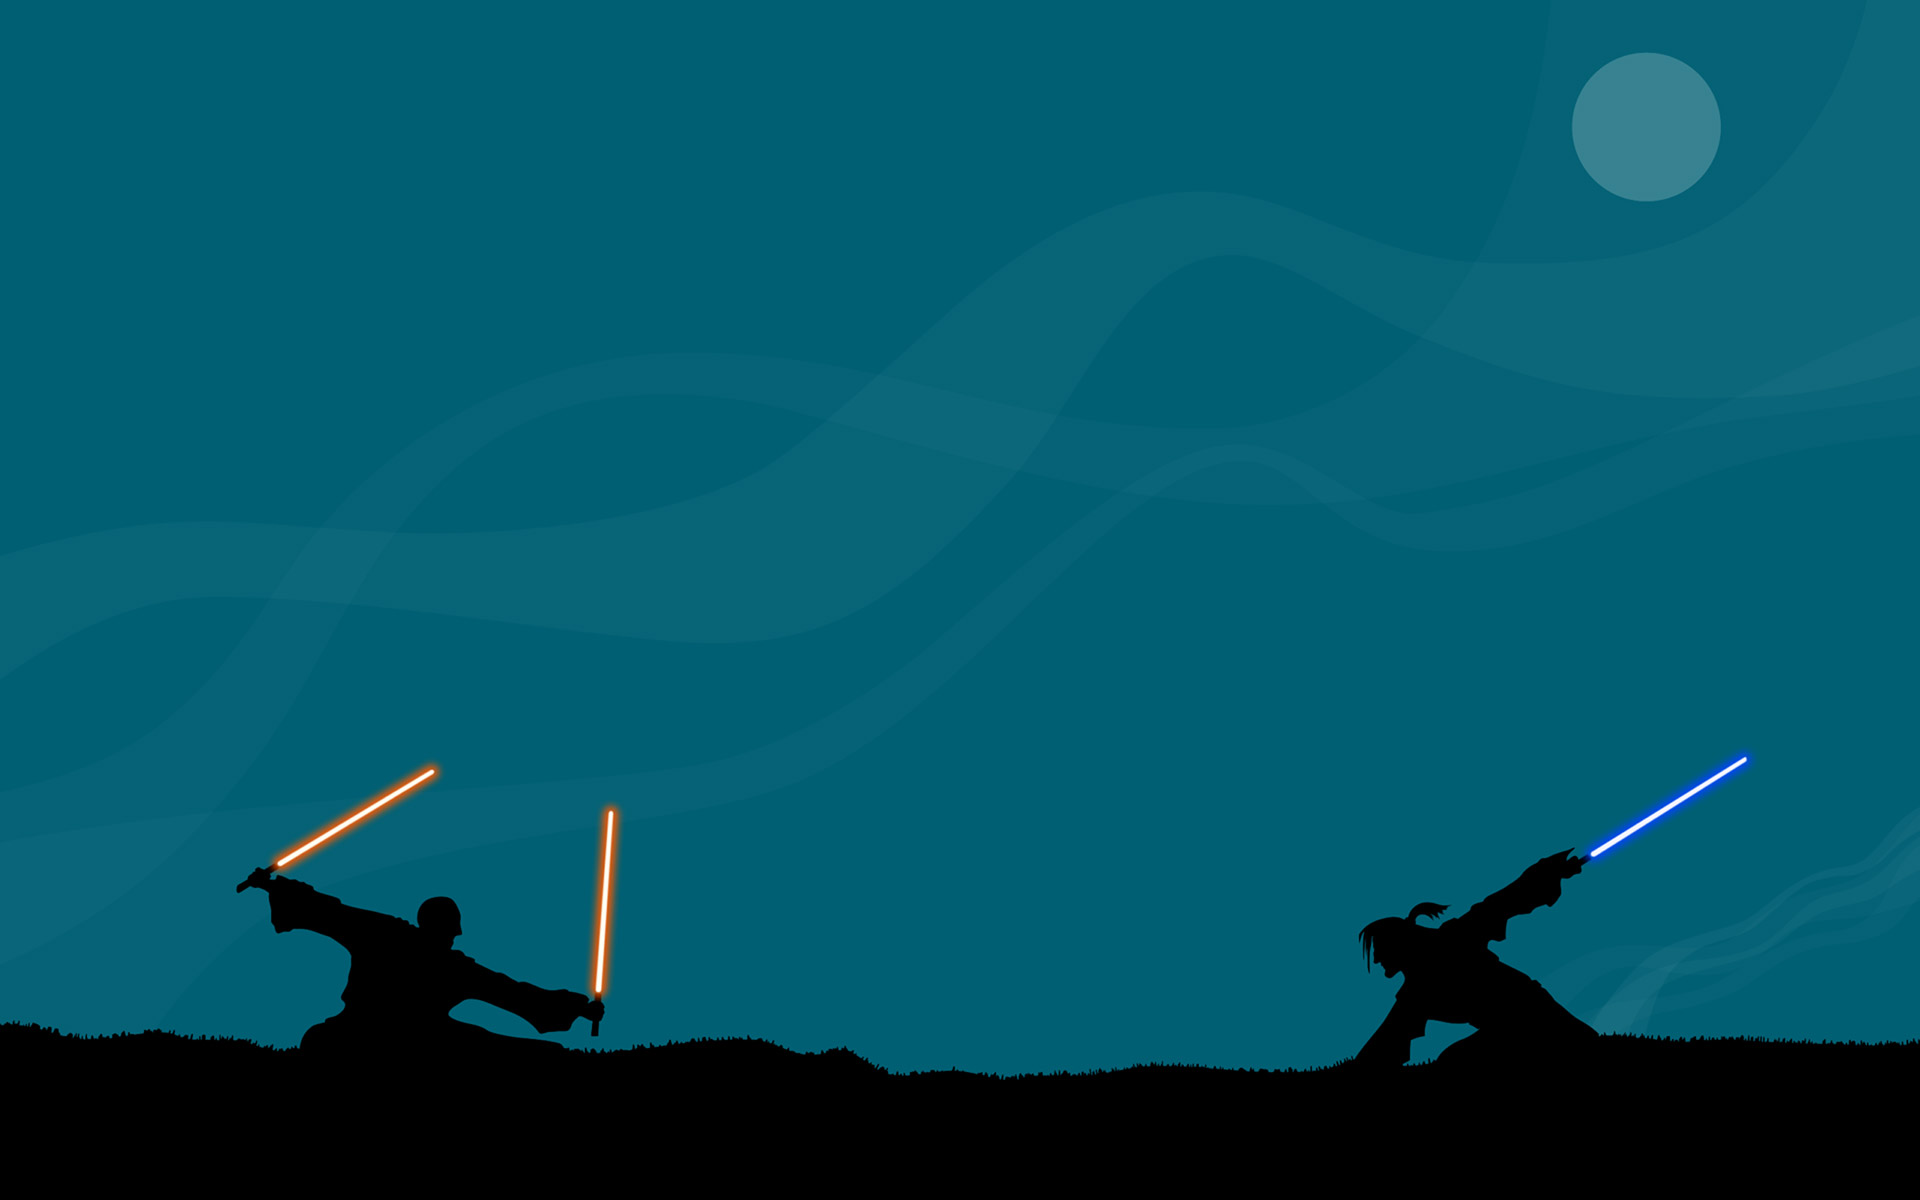 Star Wars Vector Hd Wallpaper